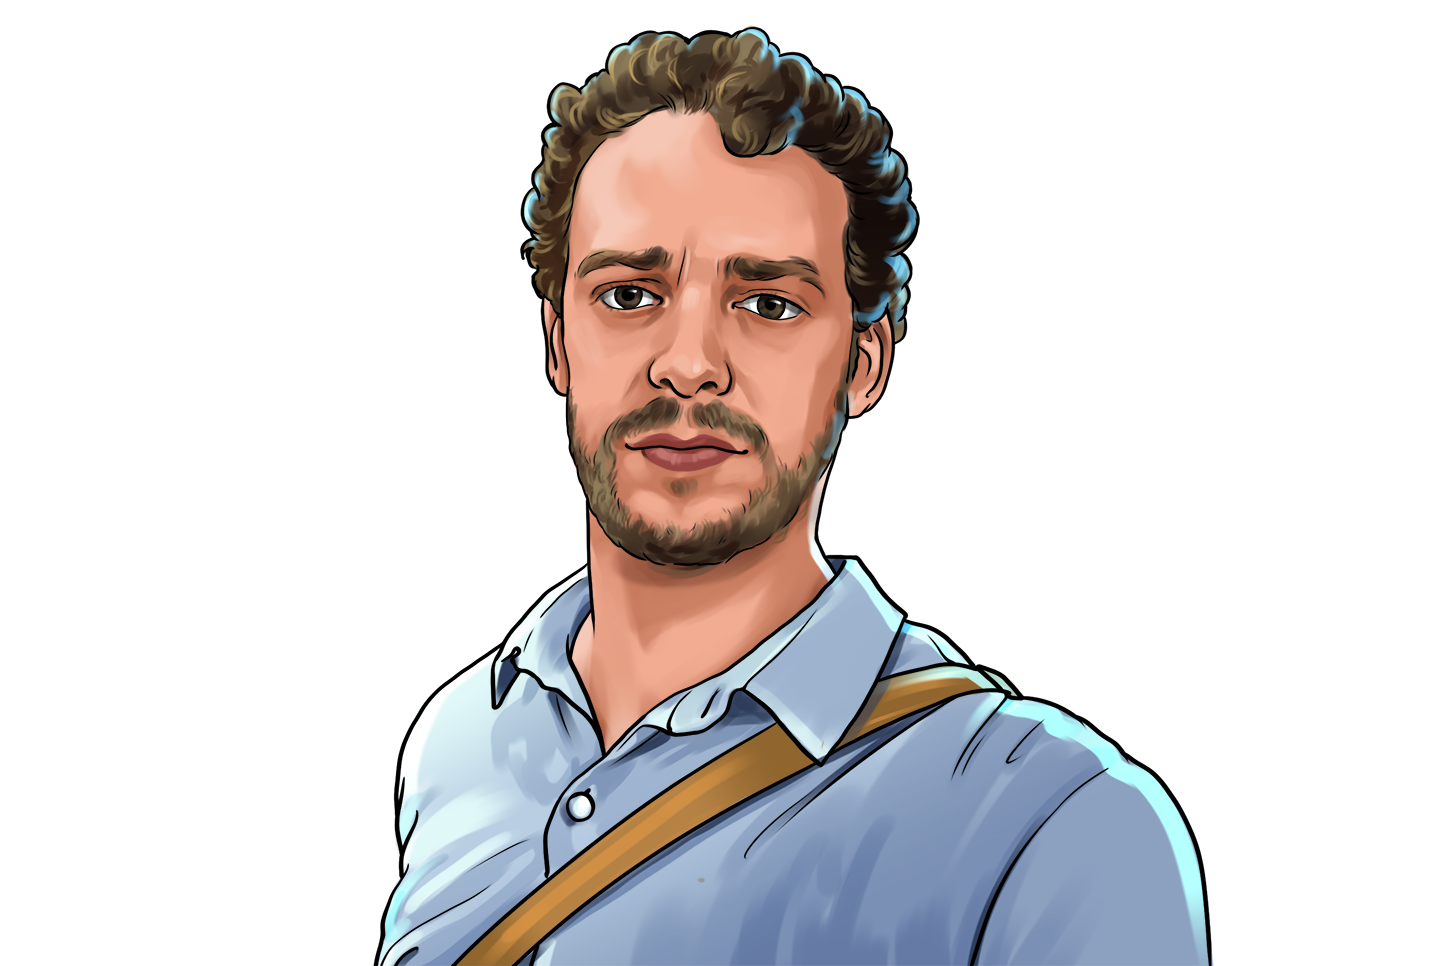 Claudio Rabin & Editor-chefe no Portal do Bitcoin & poster`